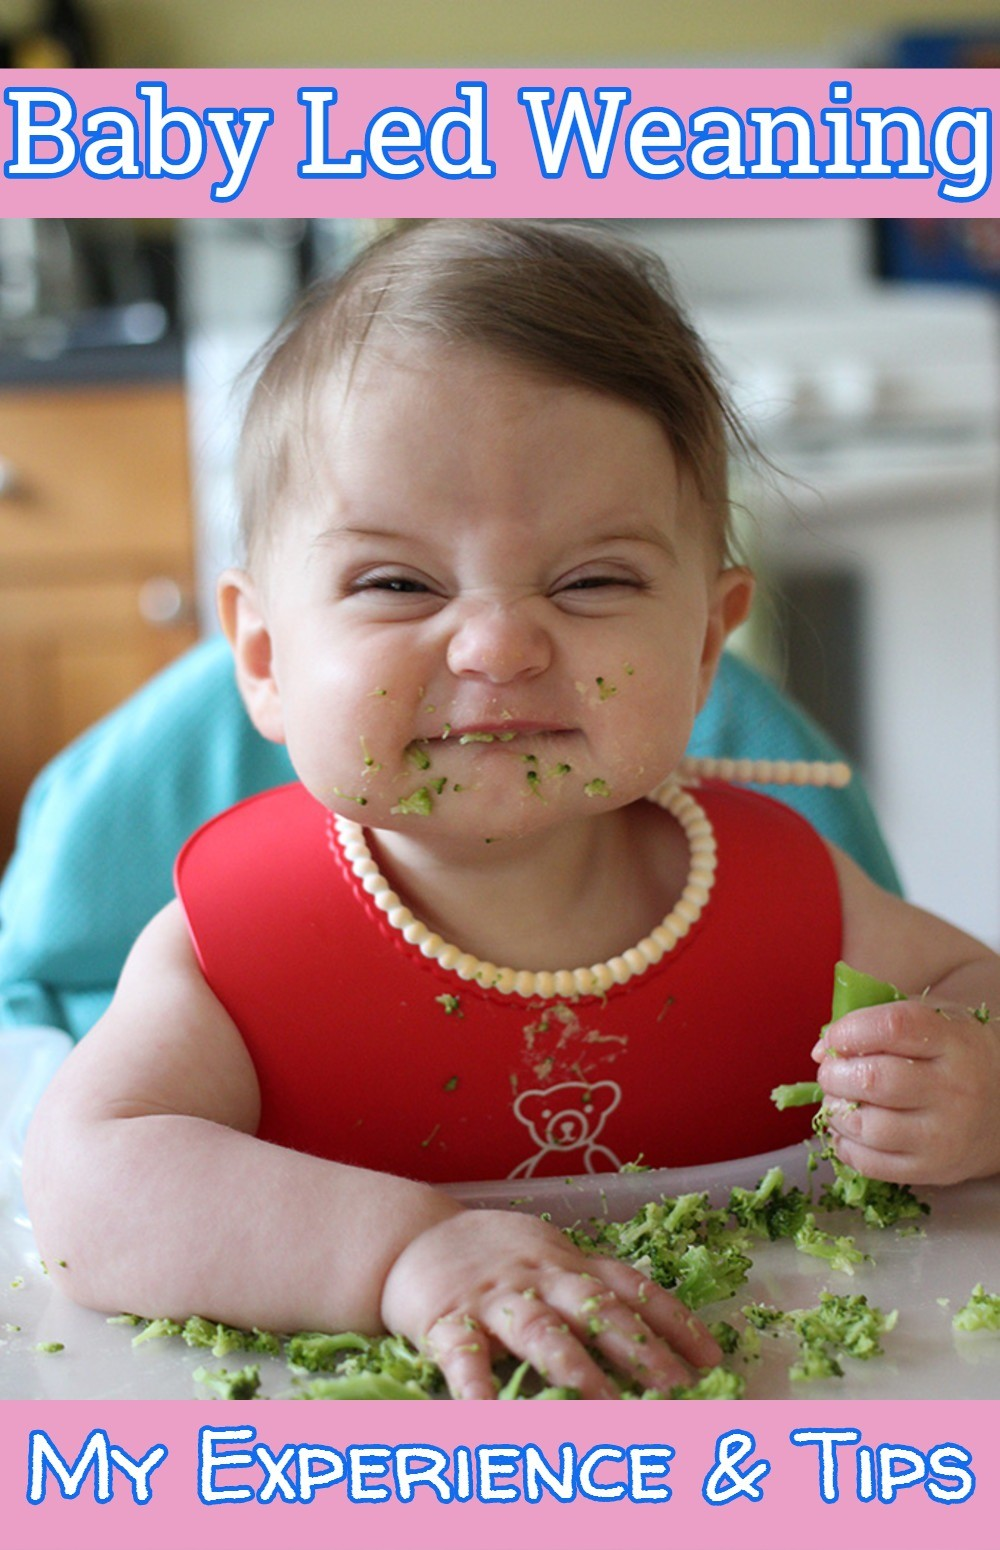 Are you starting baby led weaning? Introducing solid foods and need some tips?